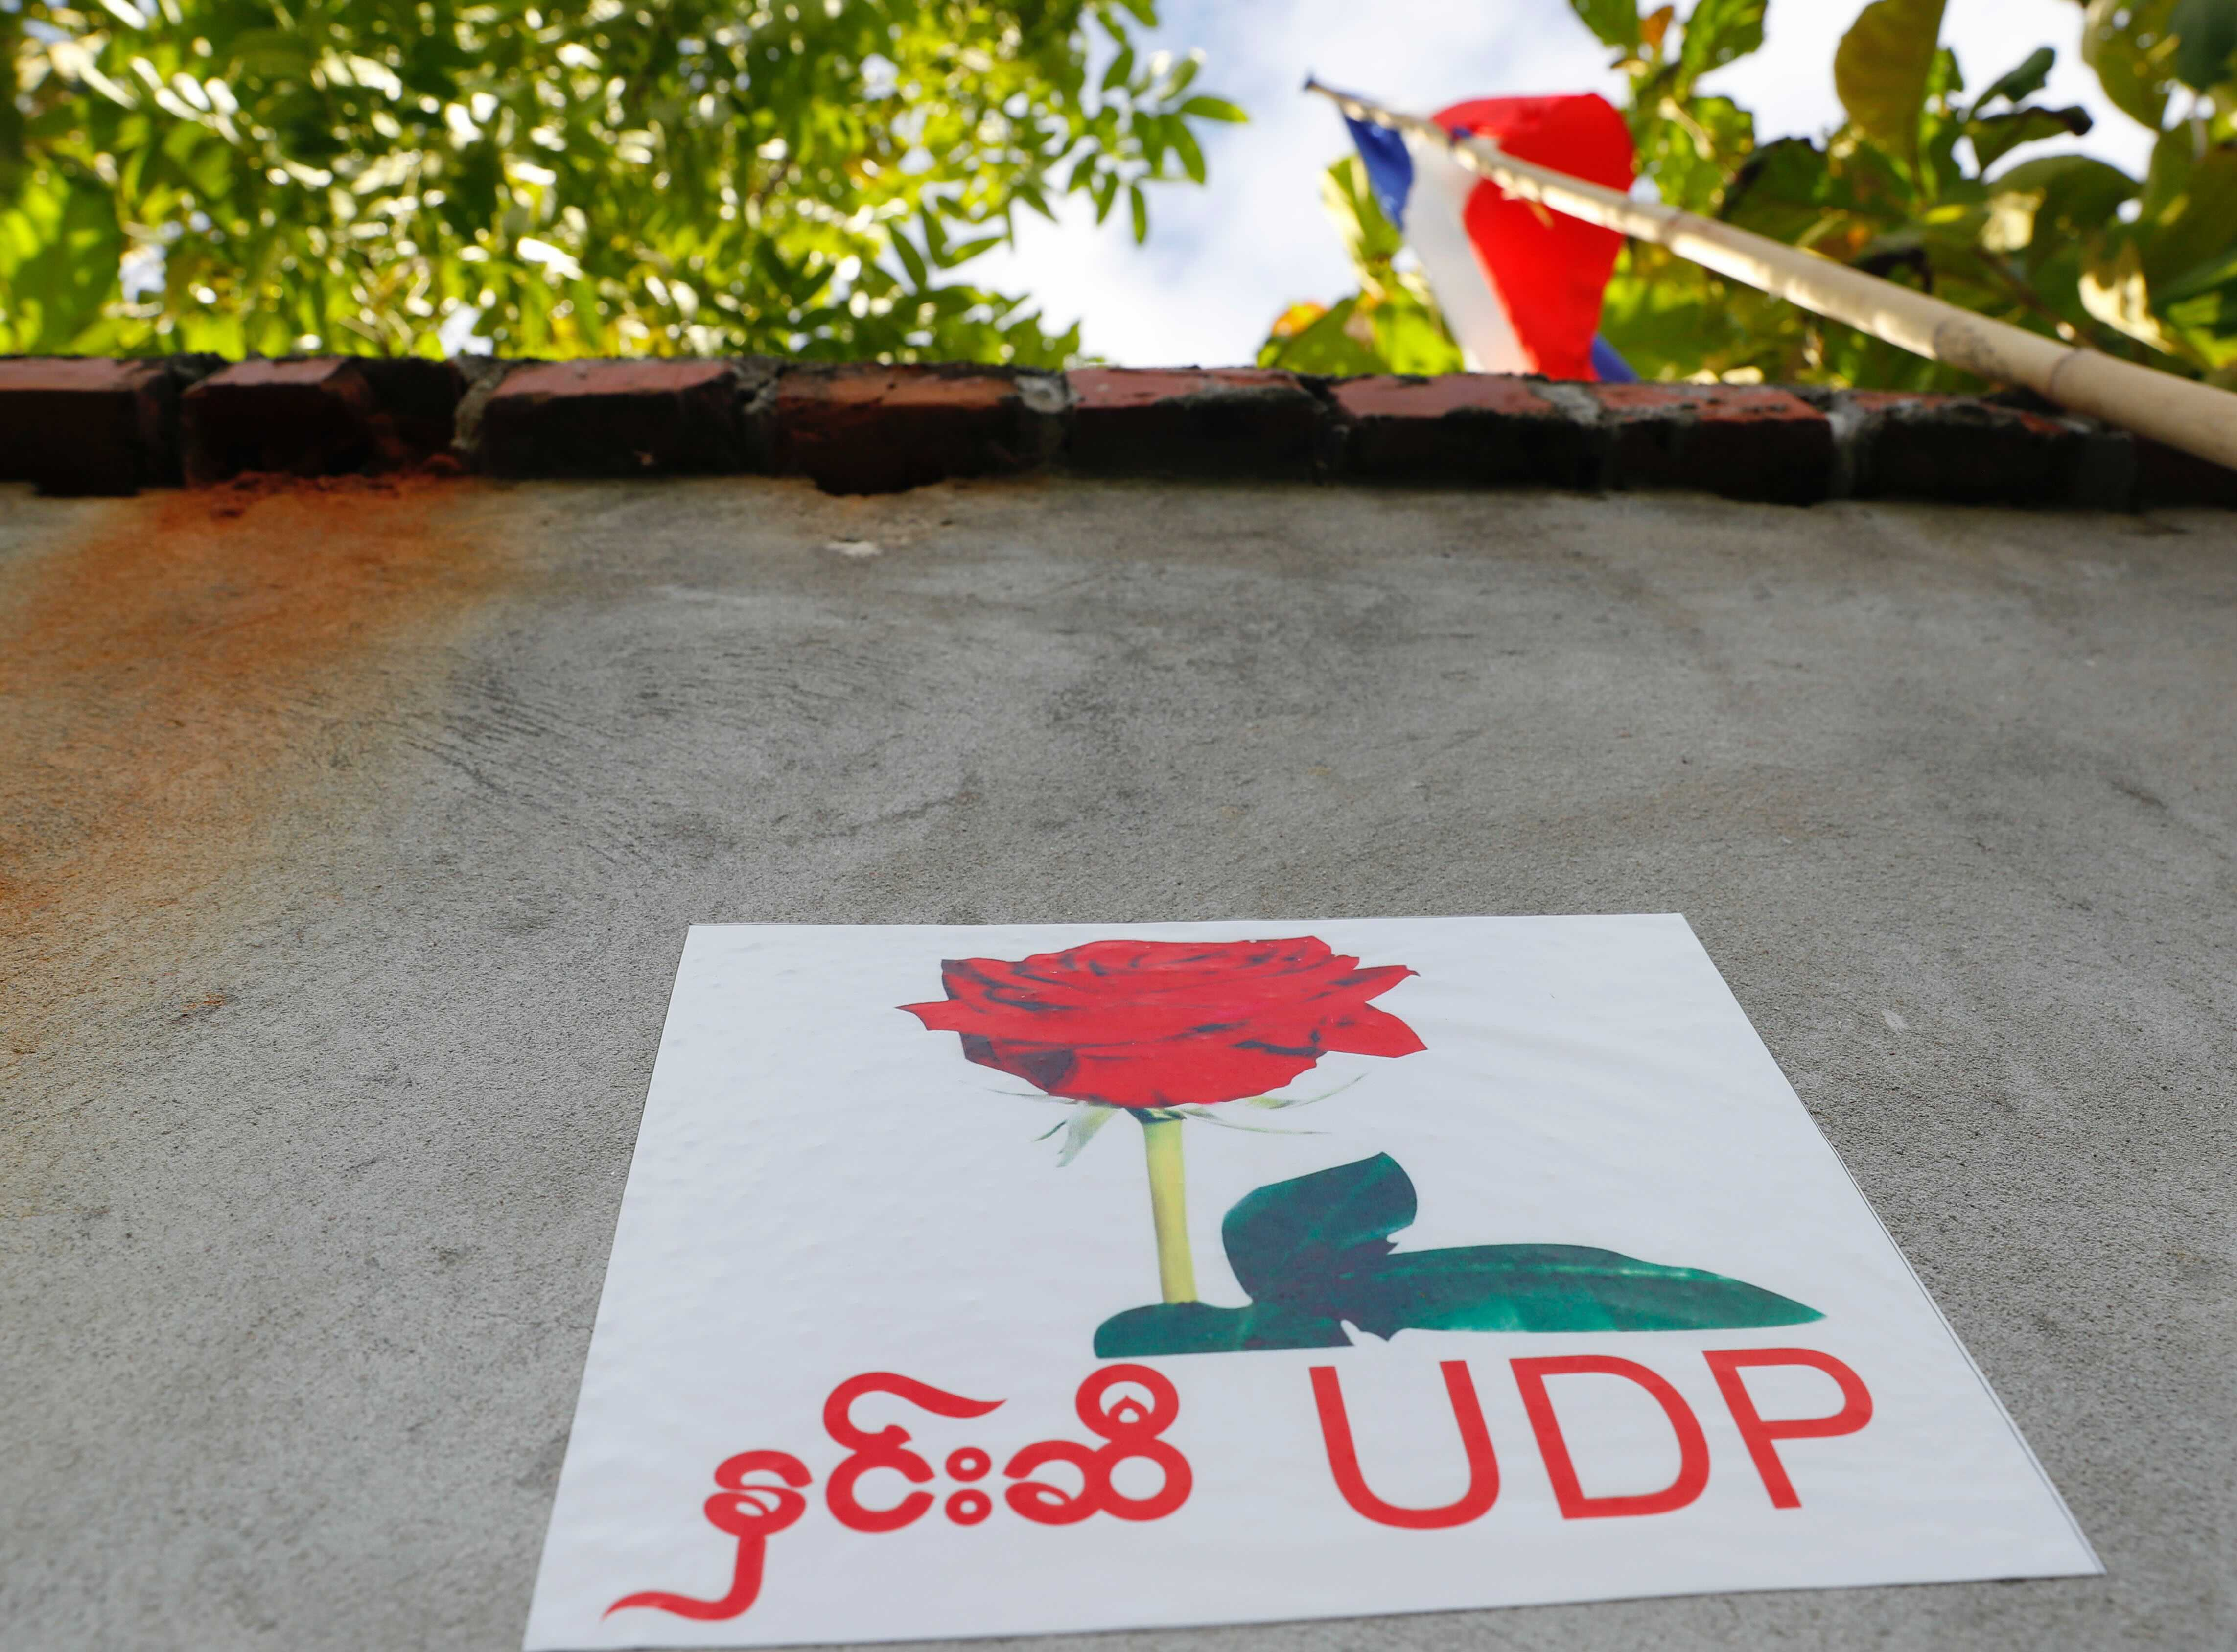 A poster of the United Democratic Party is posted on the wall of the party's headquarters Wednesday, Sept. 30, 2020, in Naypyitaw, Myanmar. Kyaw Myint, the chairman of the United Democratic Party has been arrested as a fugitive from justice after recent reports in Myanmar media contained allegations of a shady past, including financial finagling and a prison escape. The party is fielding the second highest number of candidates for the November elections, and other party executives say it will carry on campaigning. (AP Photo / Aung Shine Oo)